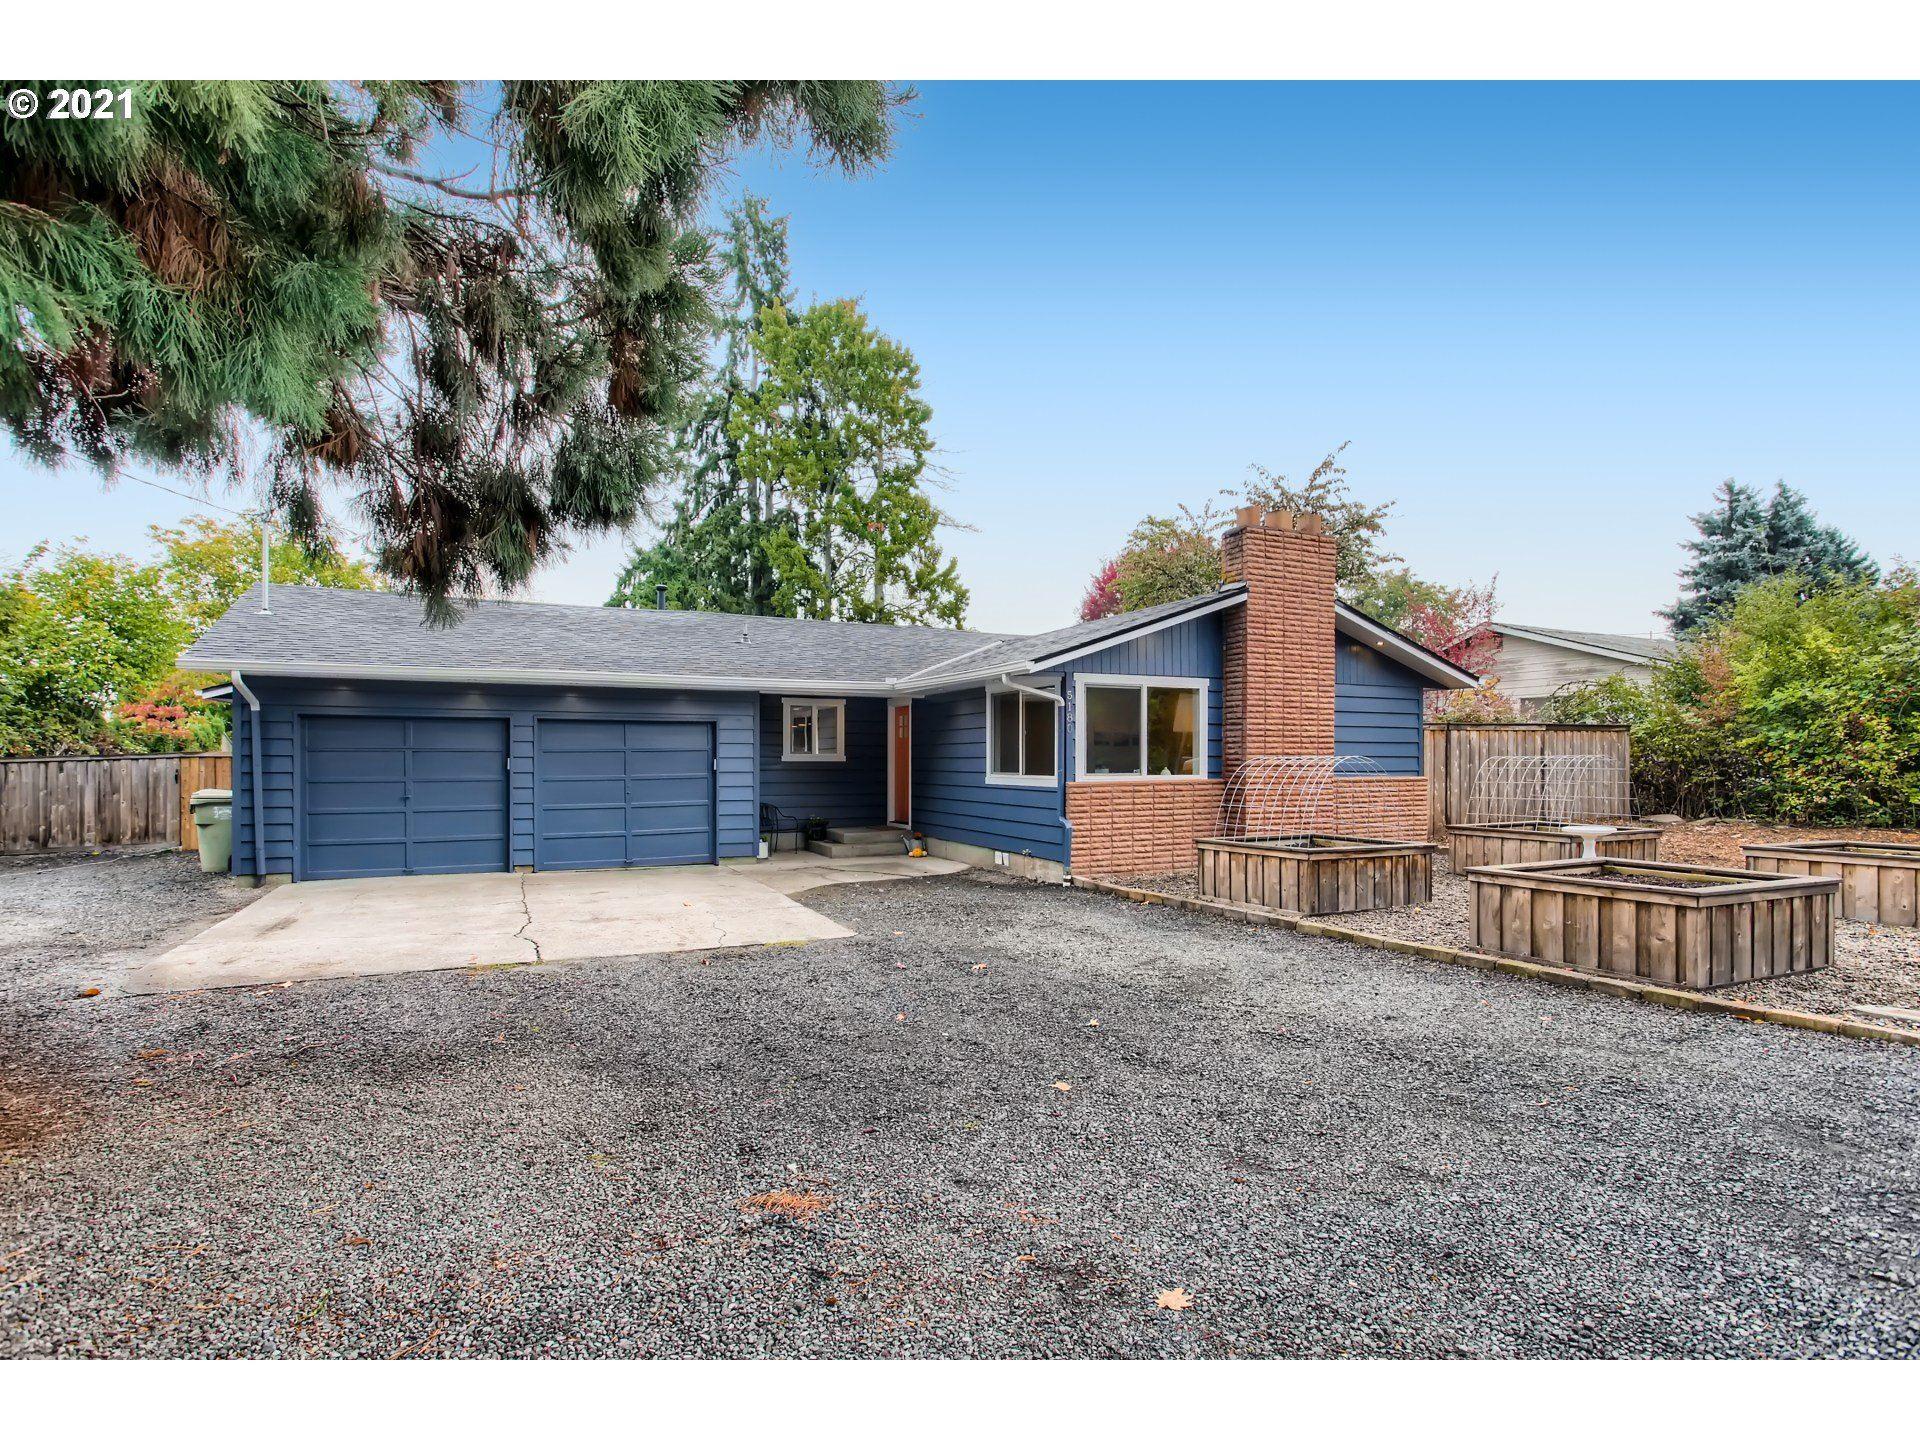 5180 SW 192ND AVE, Aloha, OR 97078 - MLS#: 21437579